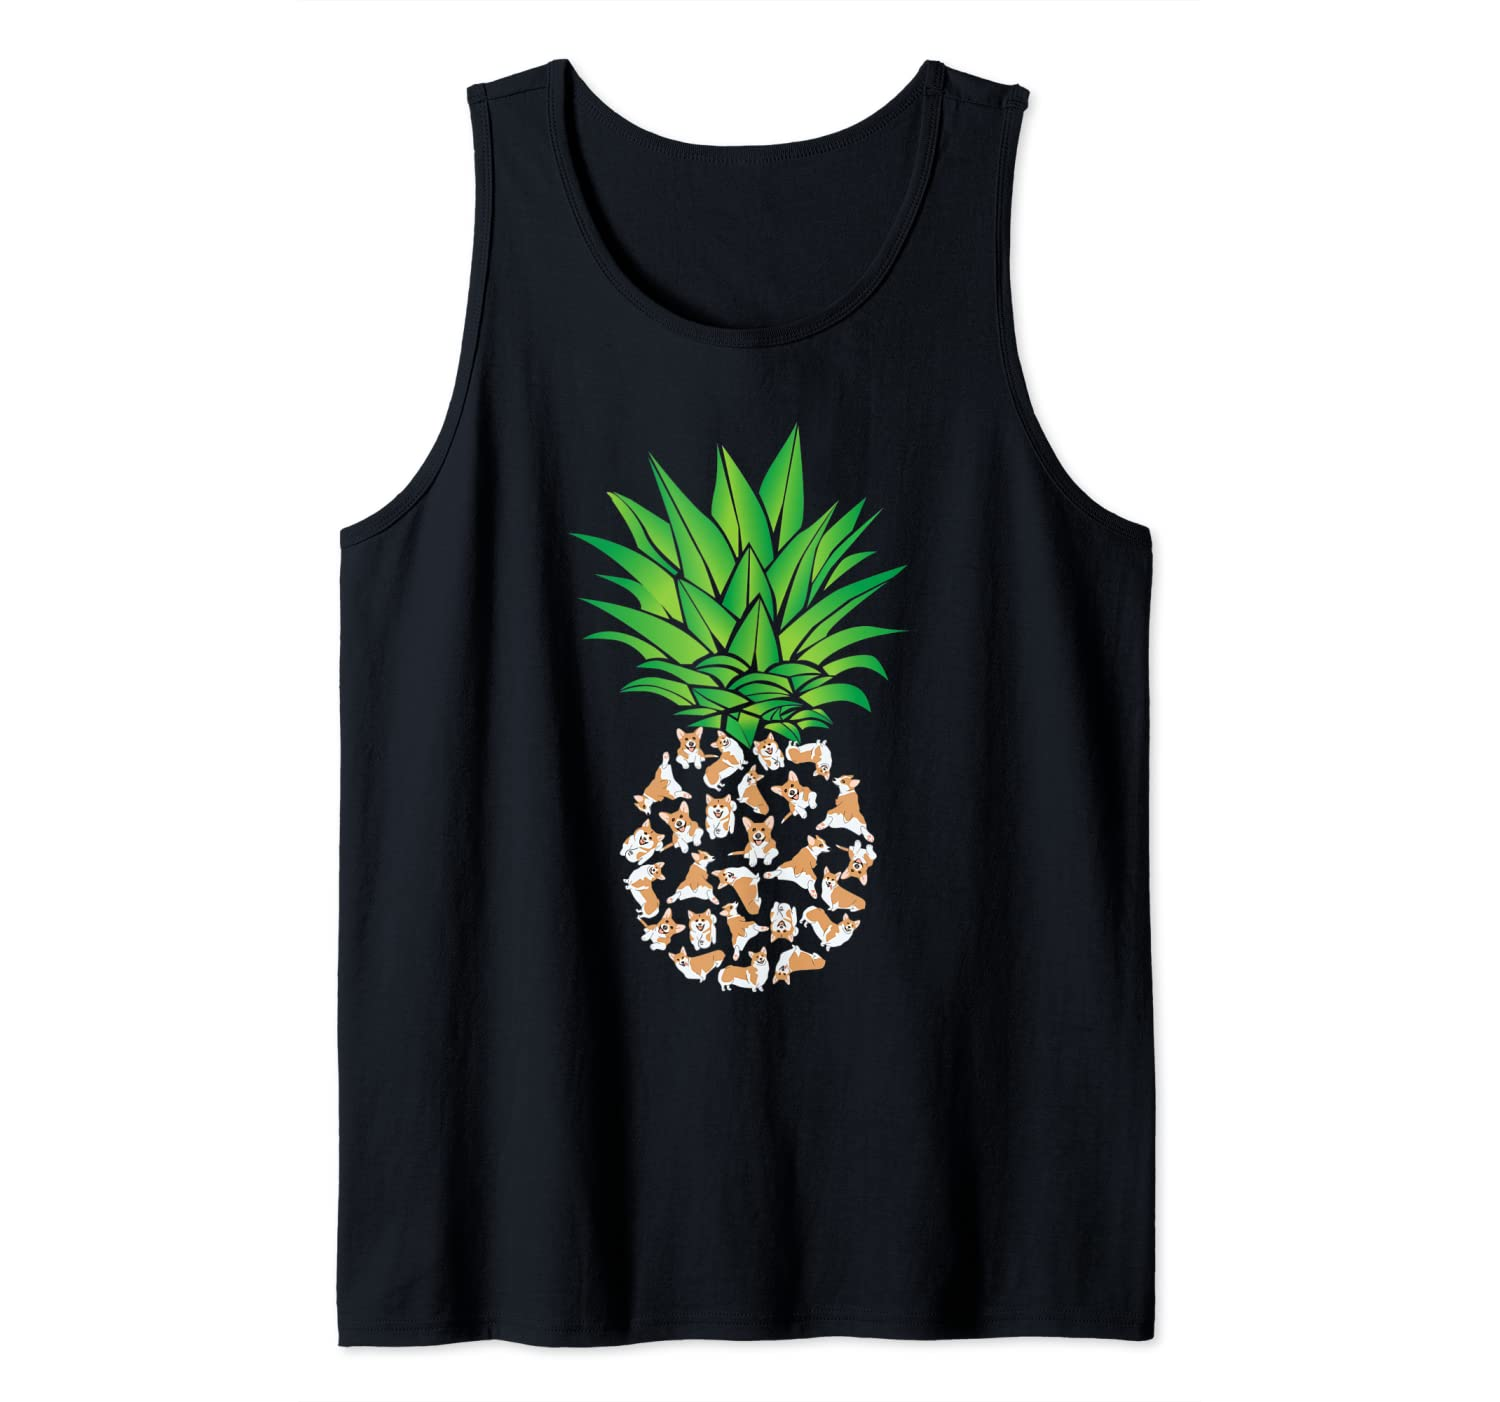 Pembroke Welsh Corgi, Corgi, Pineapple Tank Top